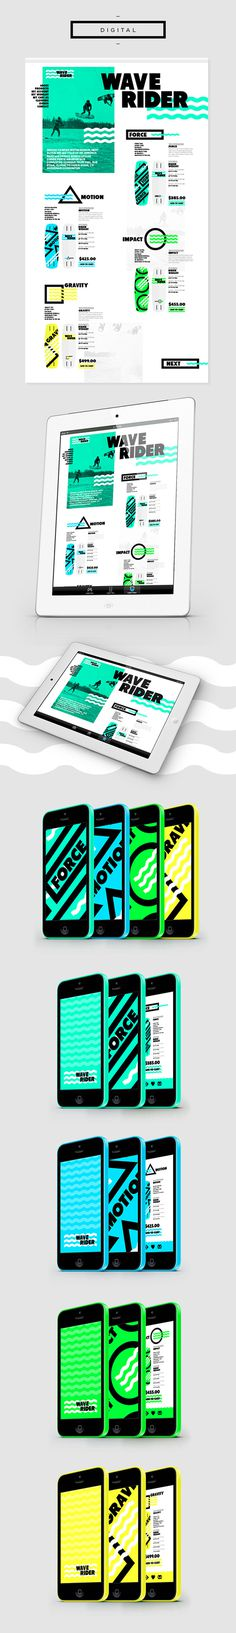 WAVERIDER // Branding on Behance #logo #identity #shape #green #branding #black #sea #water